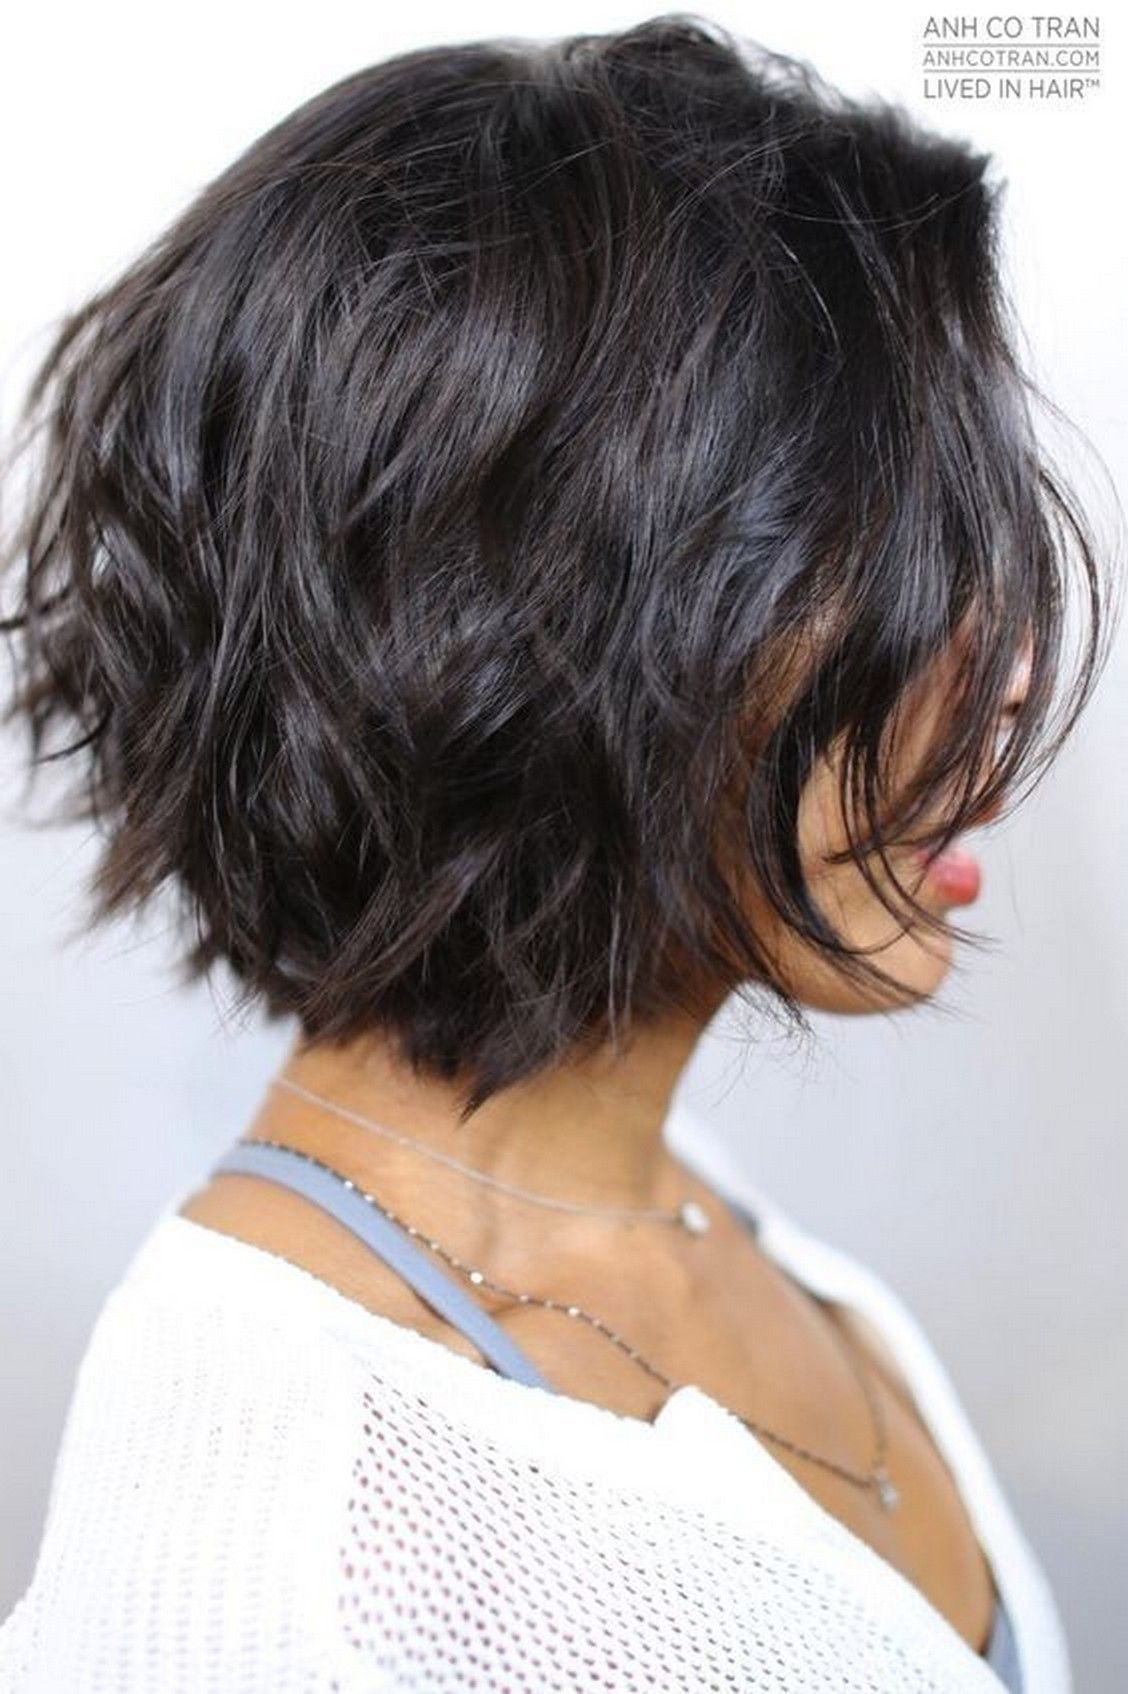 Short hairstyle and haircuts fashionetter hairstyles